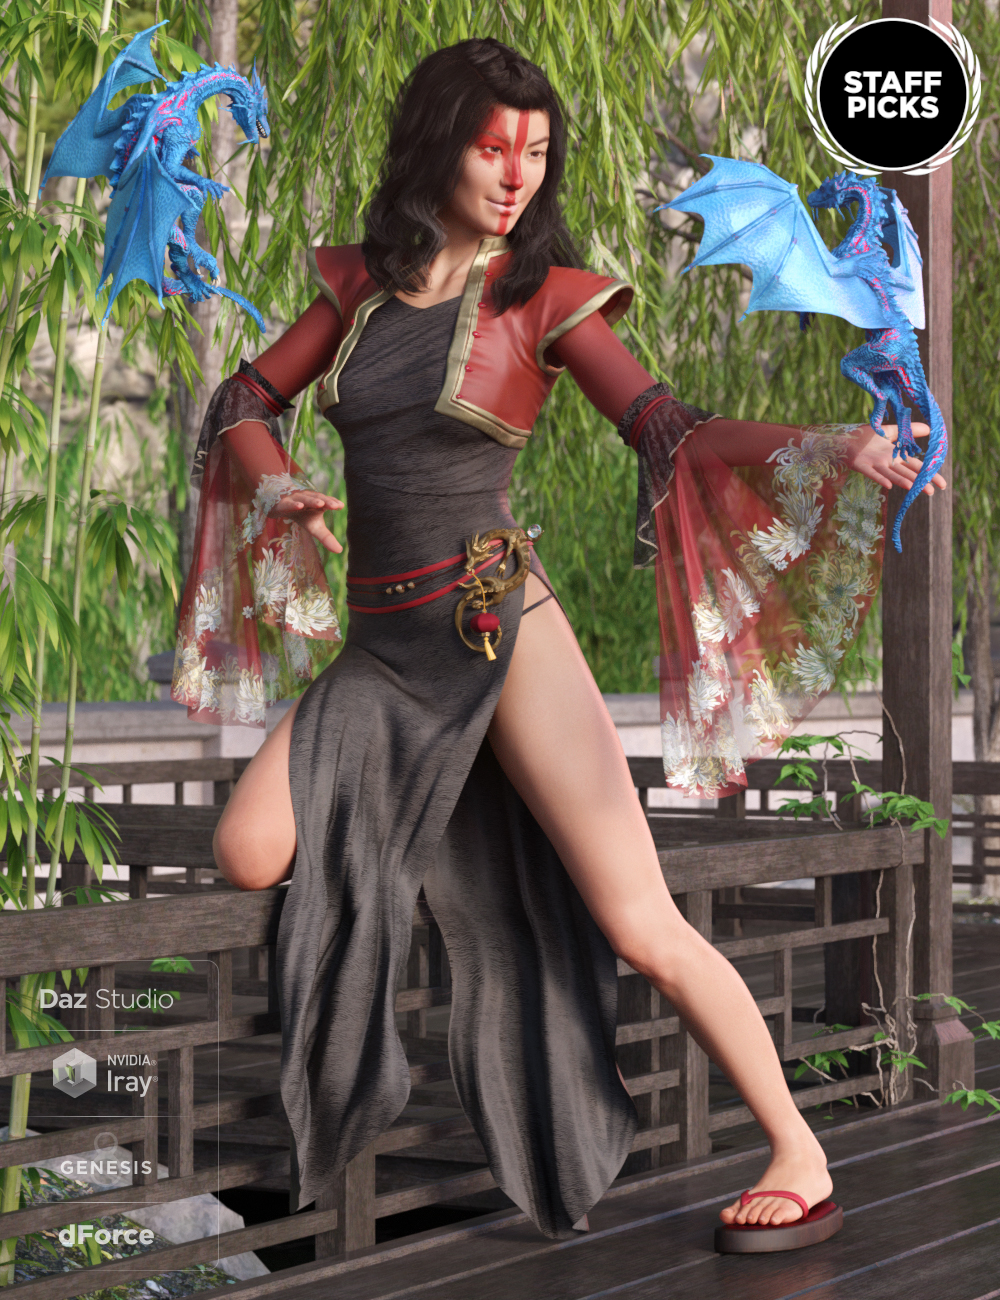 dForce Dragon Lady Outfit for Genesis 8 Female(s) by: Mada, 3D Models by Daz 3D